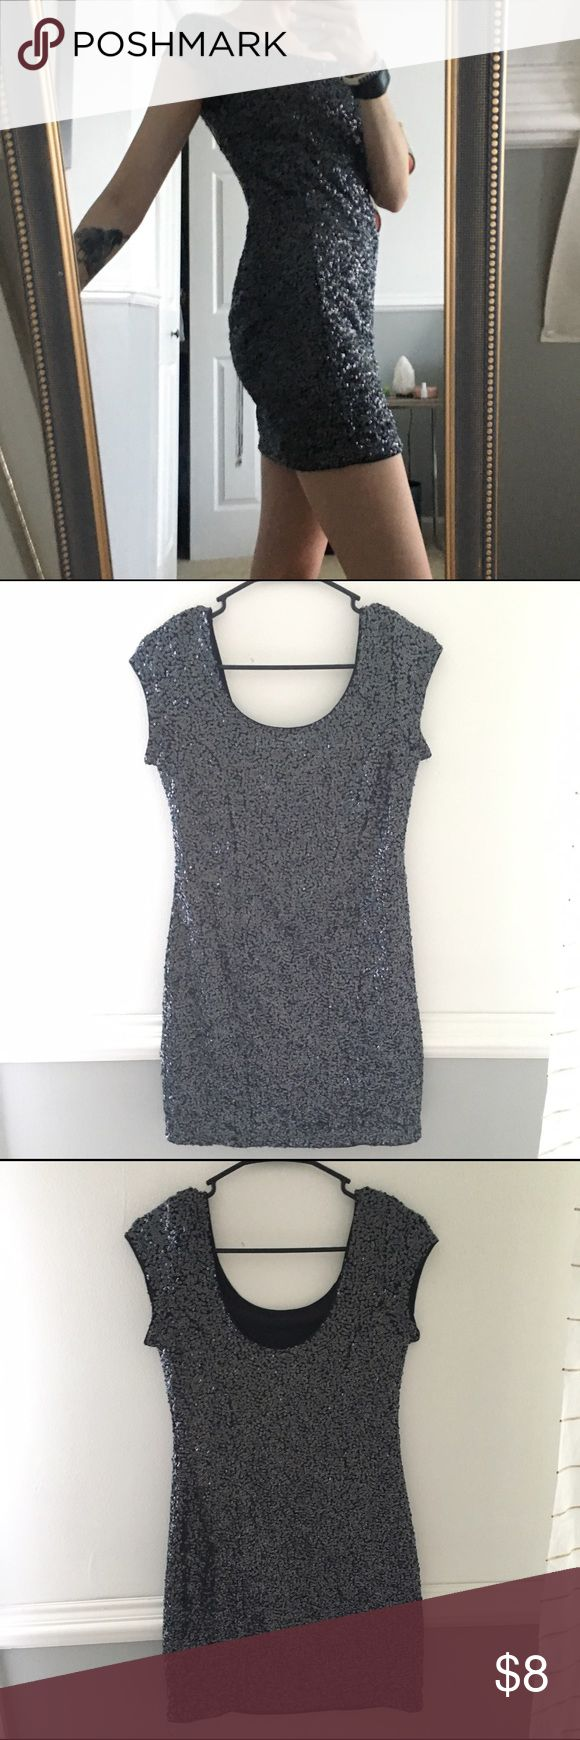 Navy Sequin Mini Party Dress -Worn Once- Fun sequin dress. Navy sequins with black lining. Lining on the inside keeps it comfortable. Great for a night out! H&M size 10, fits like a small/med, keeps its shape and stays in place throughout its wear. Divided Dresses Mini